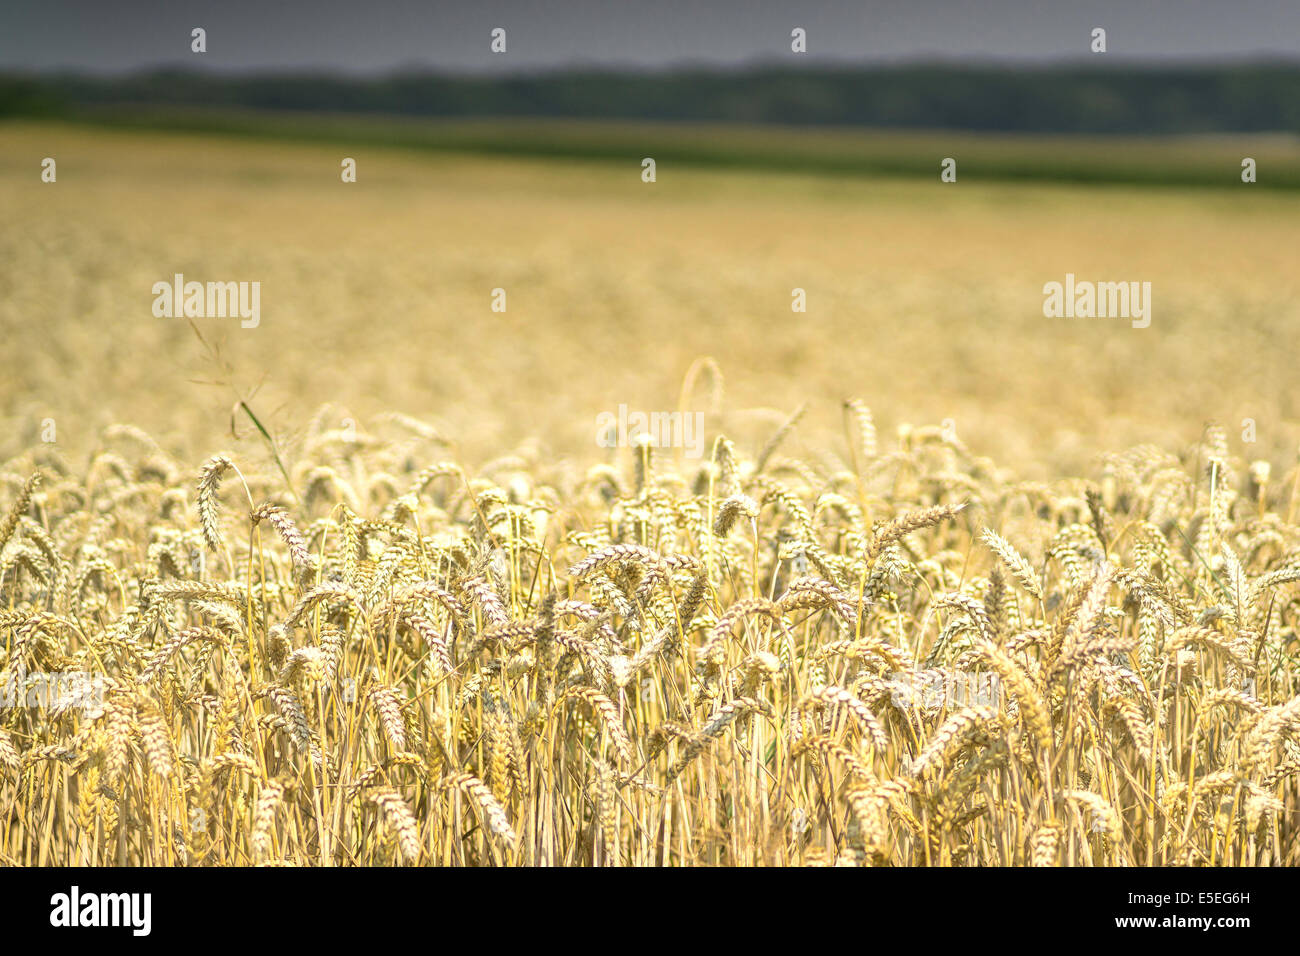 Storm coming over ripe wheat field - Stock Image